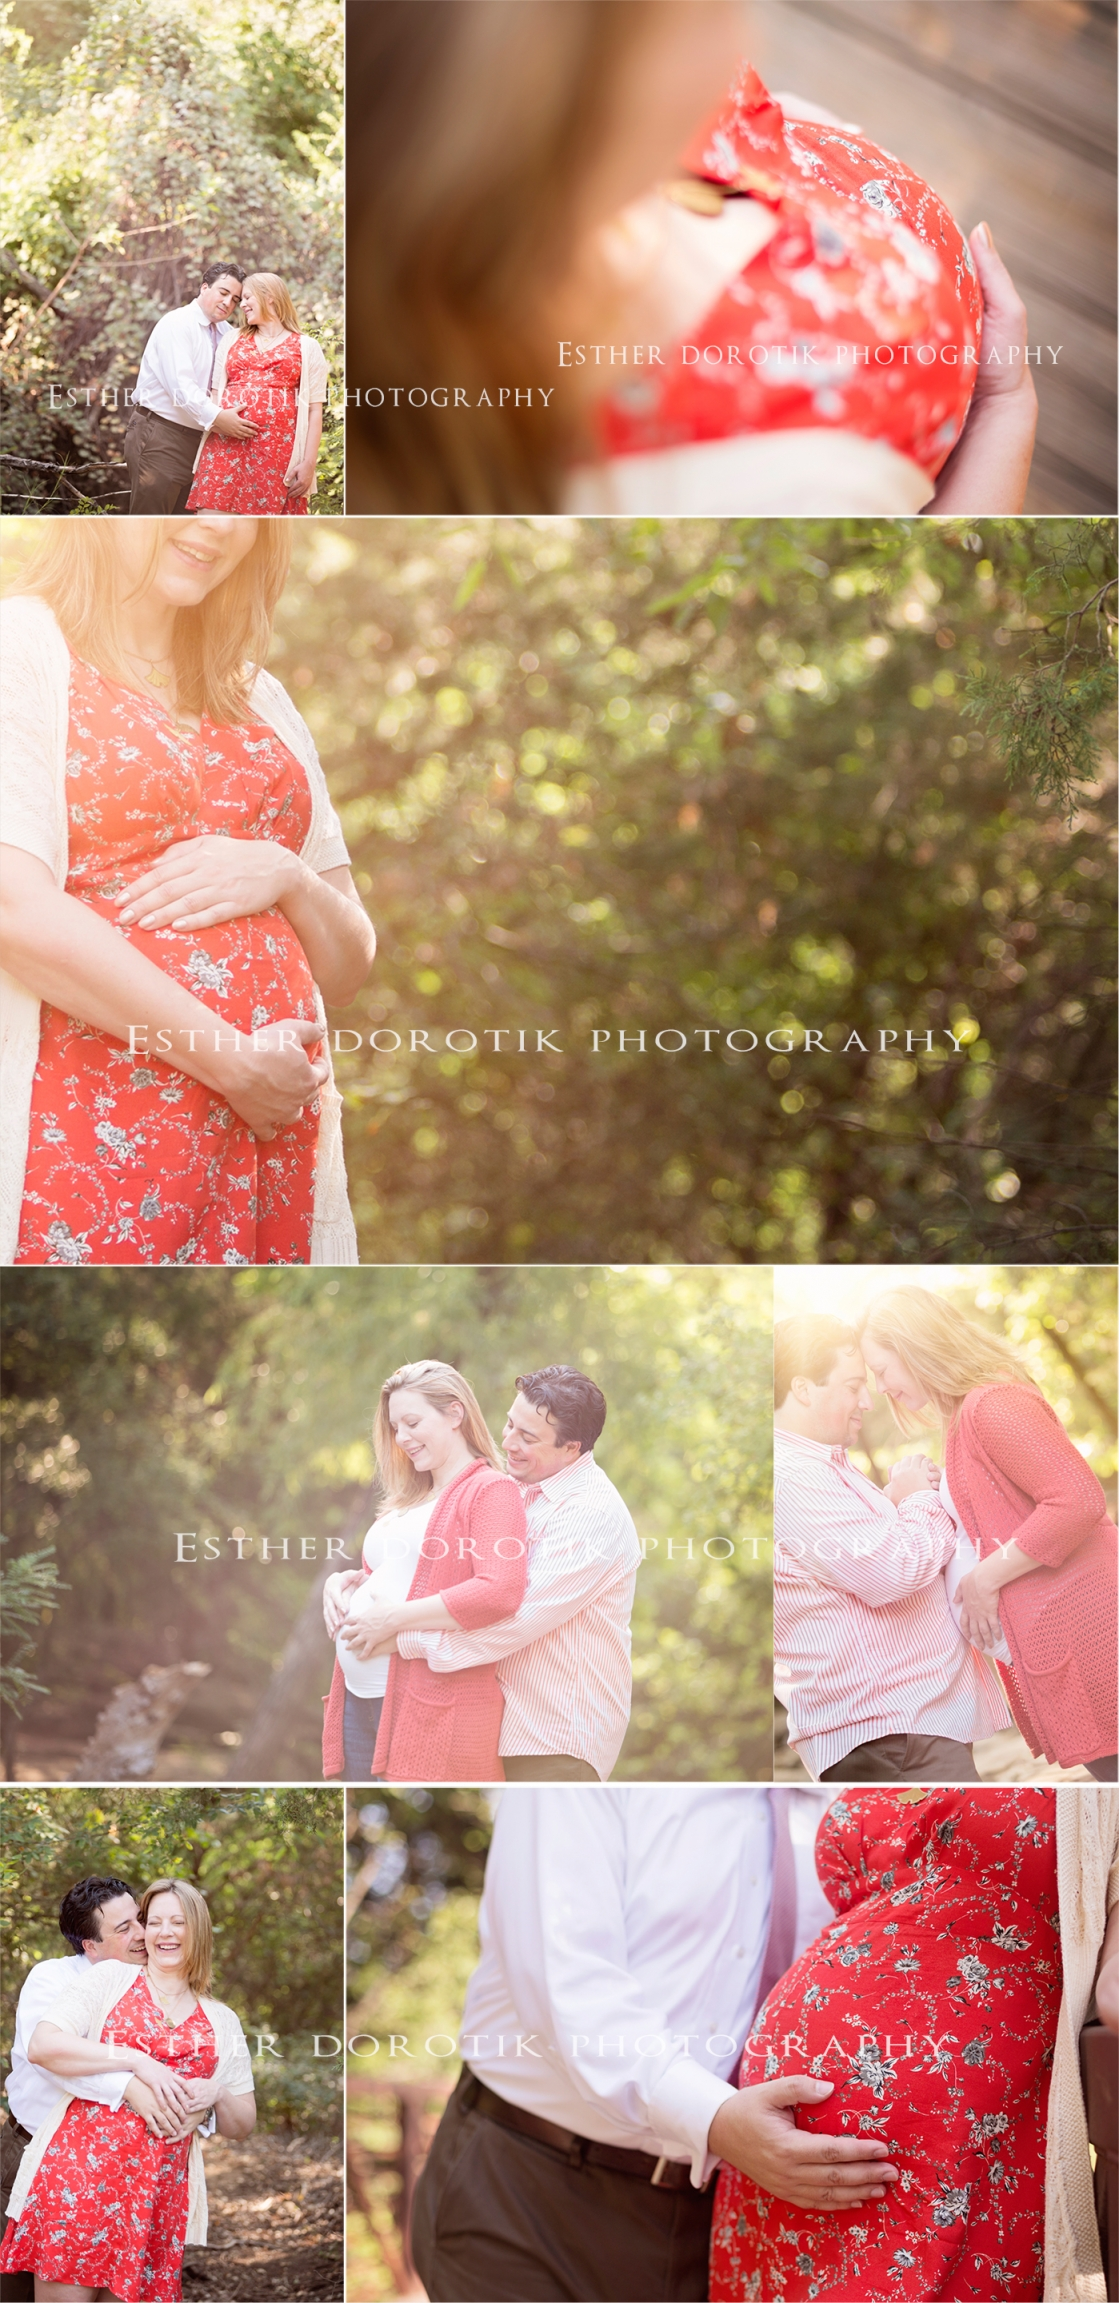 fun-outdoor-maternity-pictures-with-bright-colors-taken-by-Frisco-newborn-and-maternity-photographer